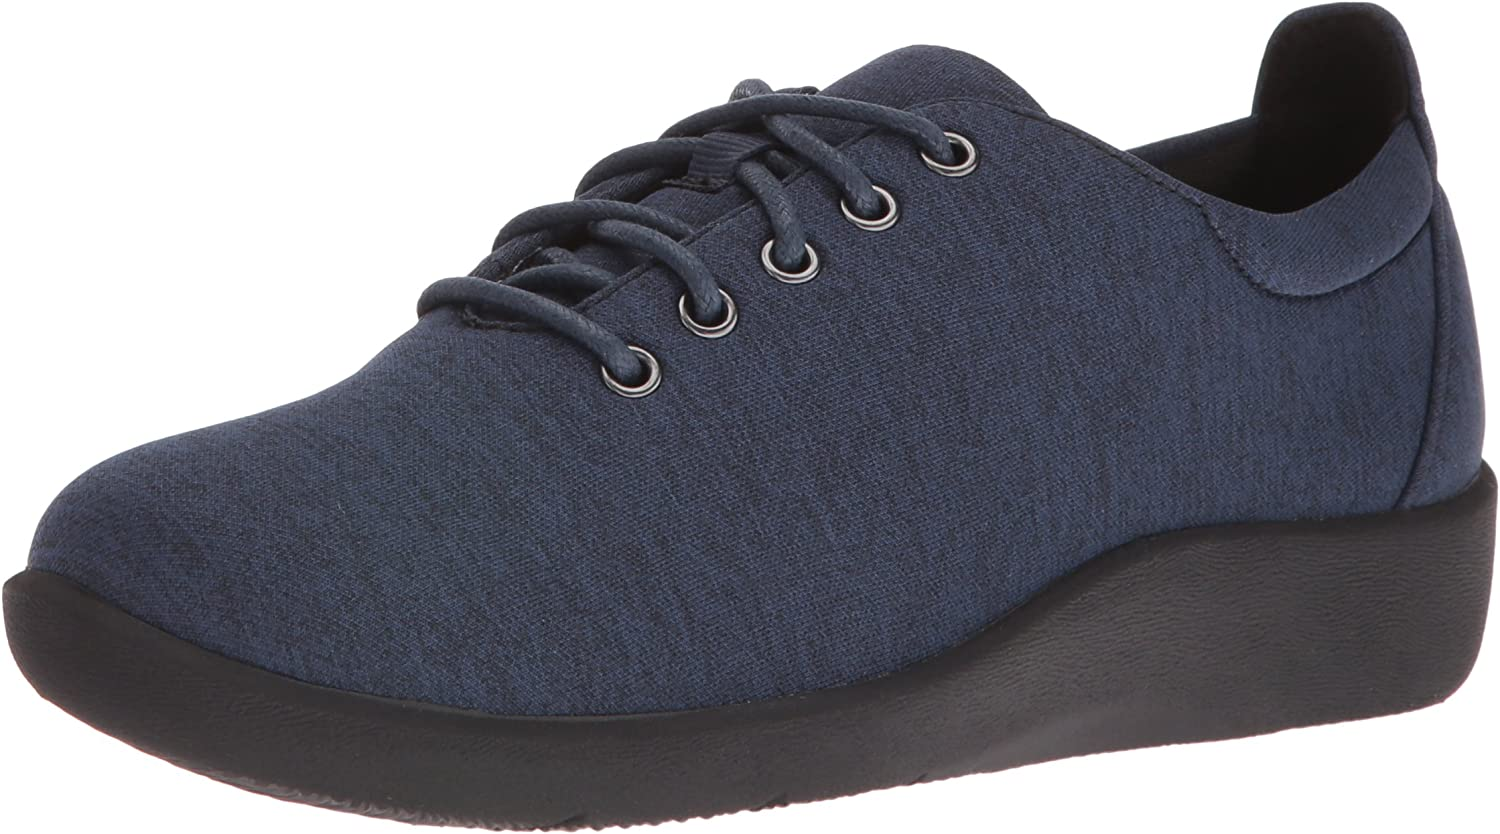 CloudSteppers Sillian Tino Lace-Up Shoe